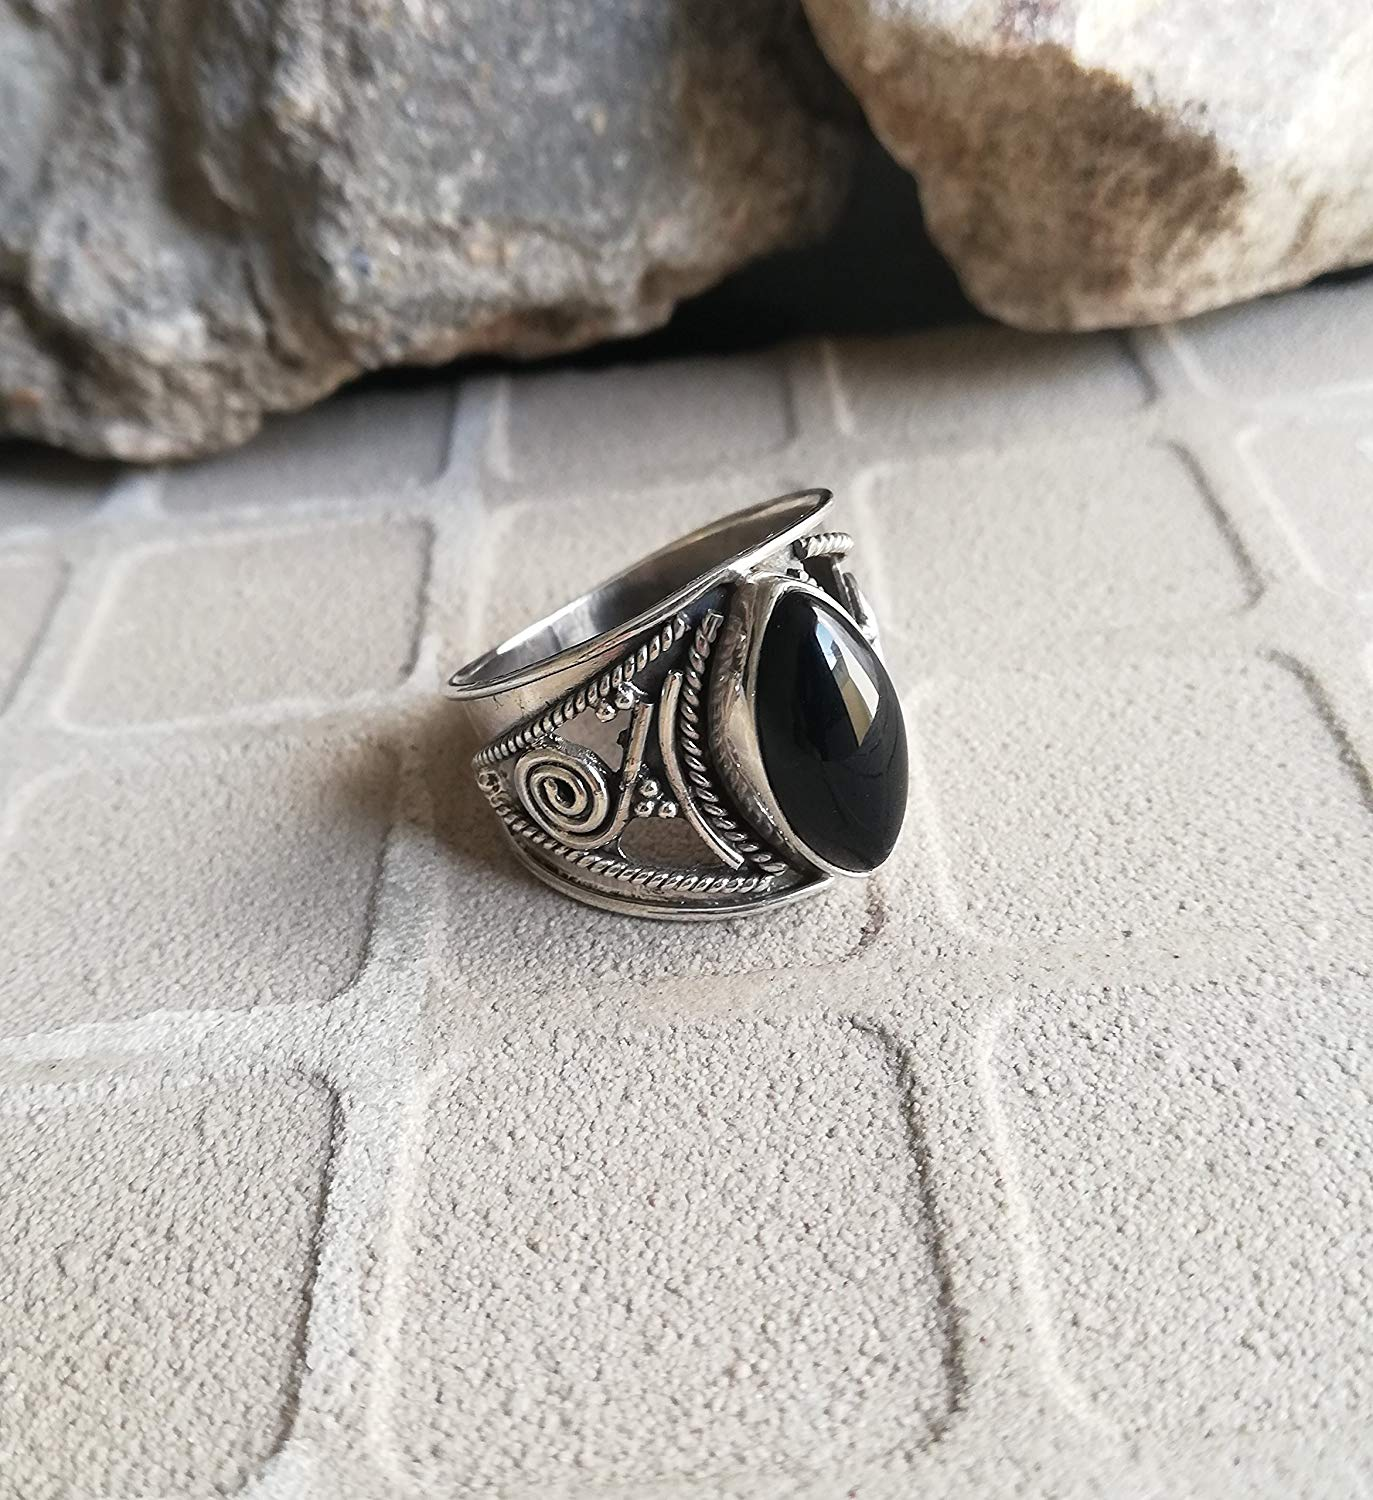 Black Onyx Ring, 925 Sterling Silver, Wide Band Ring, Designer Ring, Antique Ring, Victorian Ring, Promise Ring, Friendship Silver Ring, Classy Ring, Petite Ring, Boho Style Ring, US All Size Ring